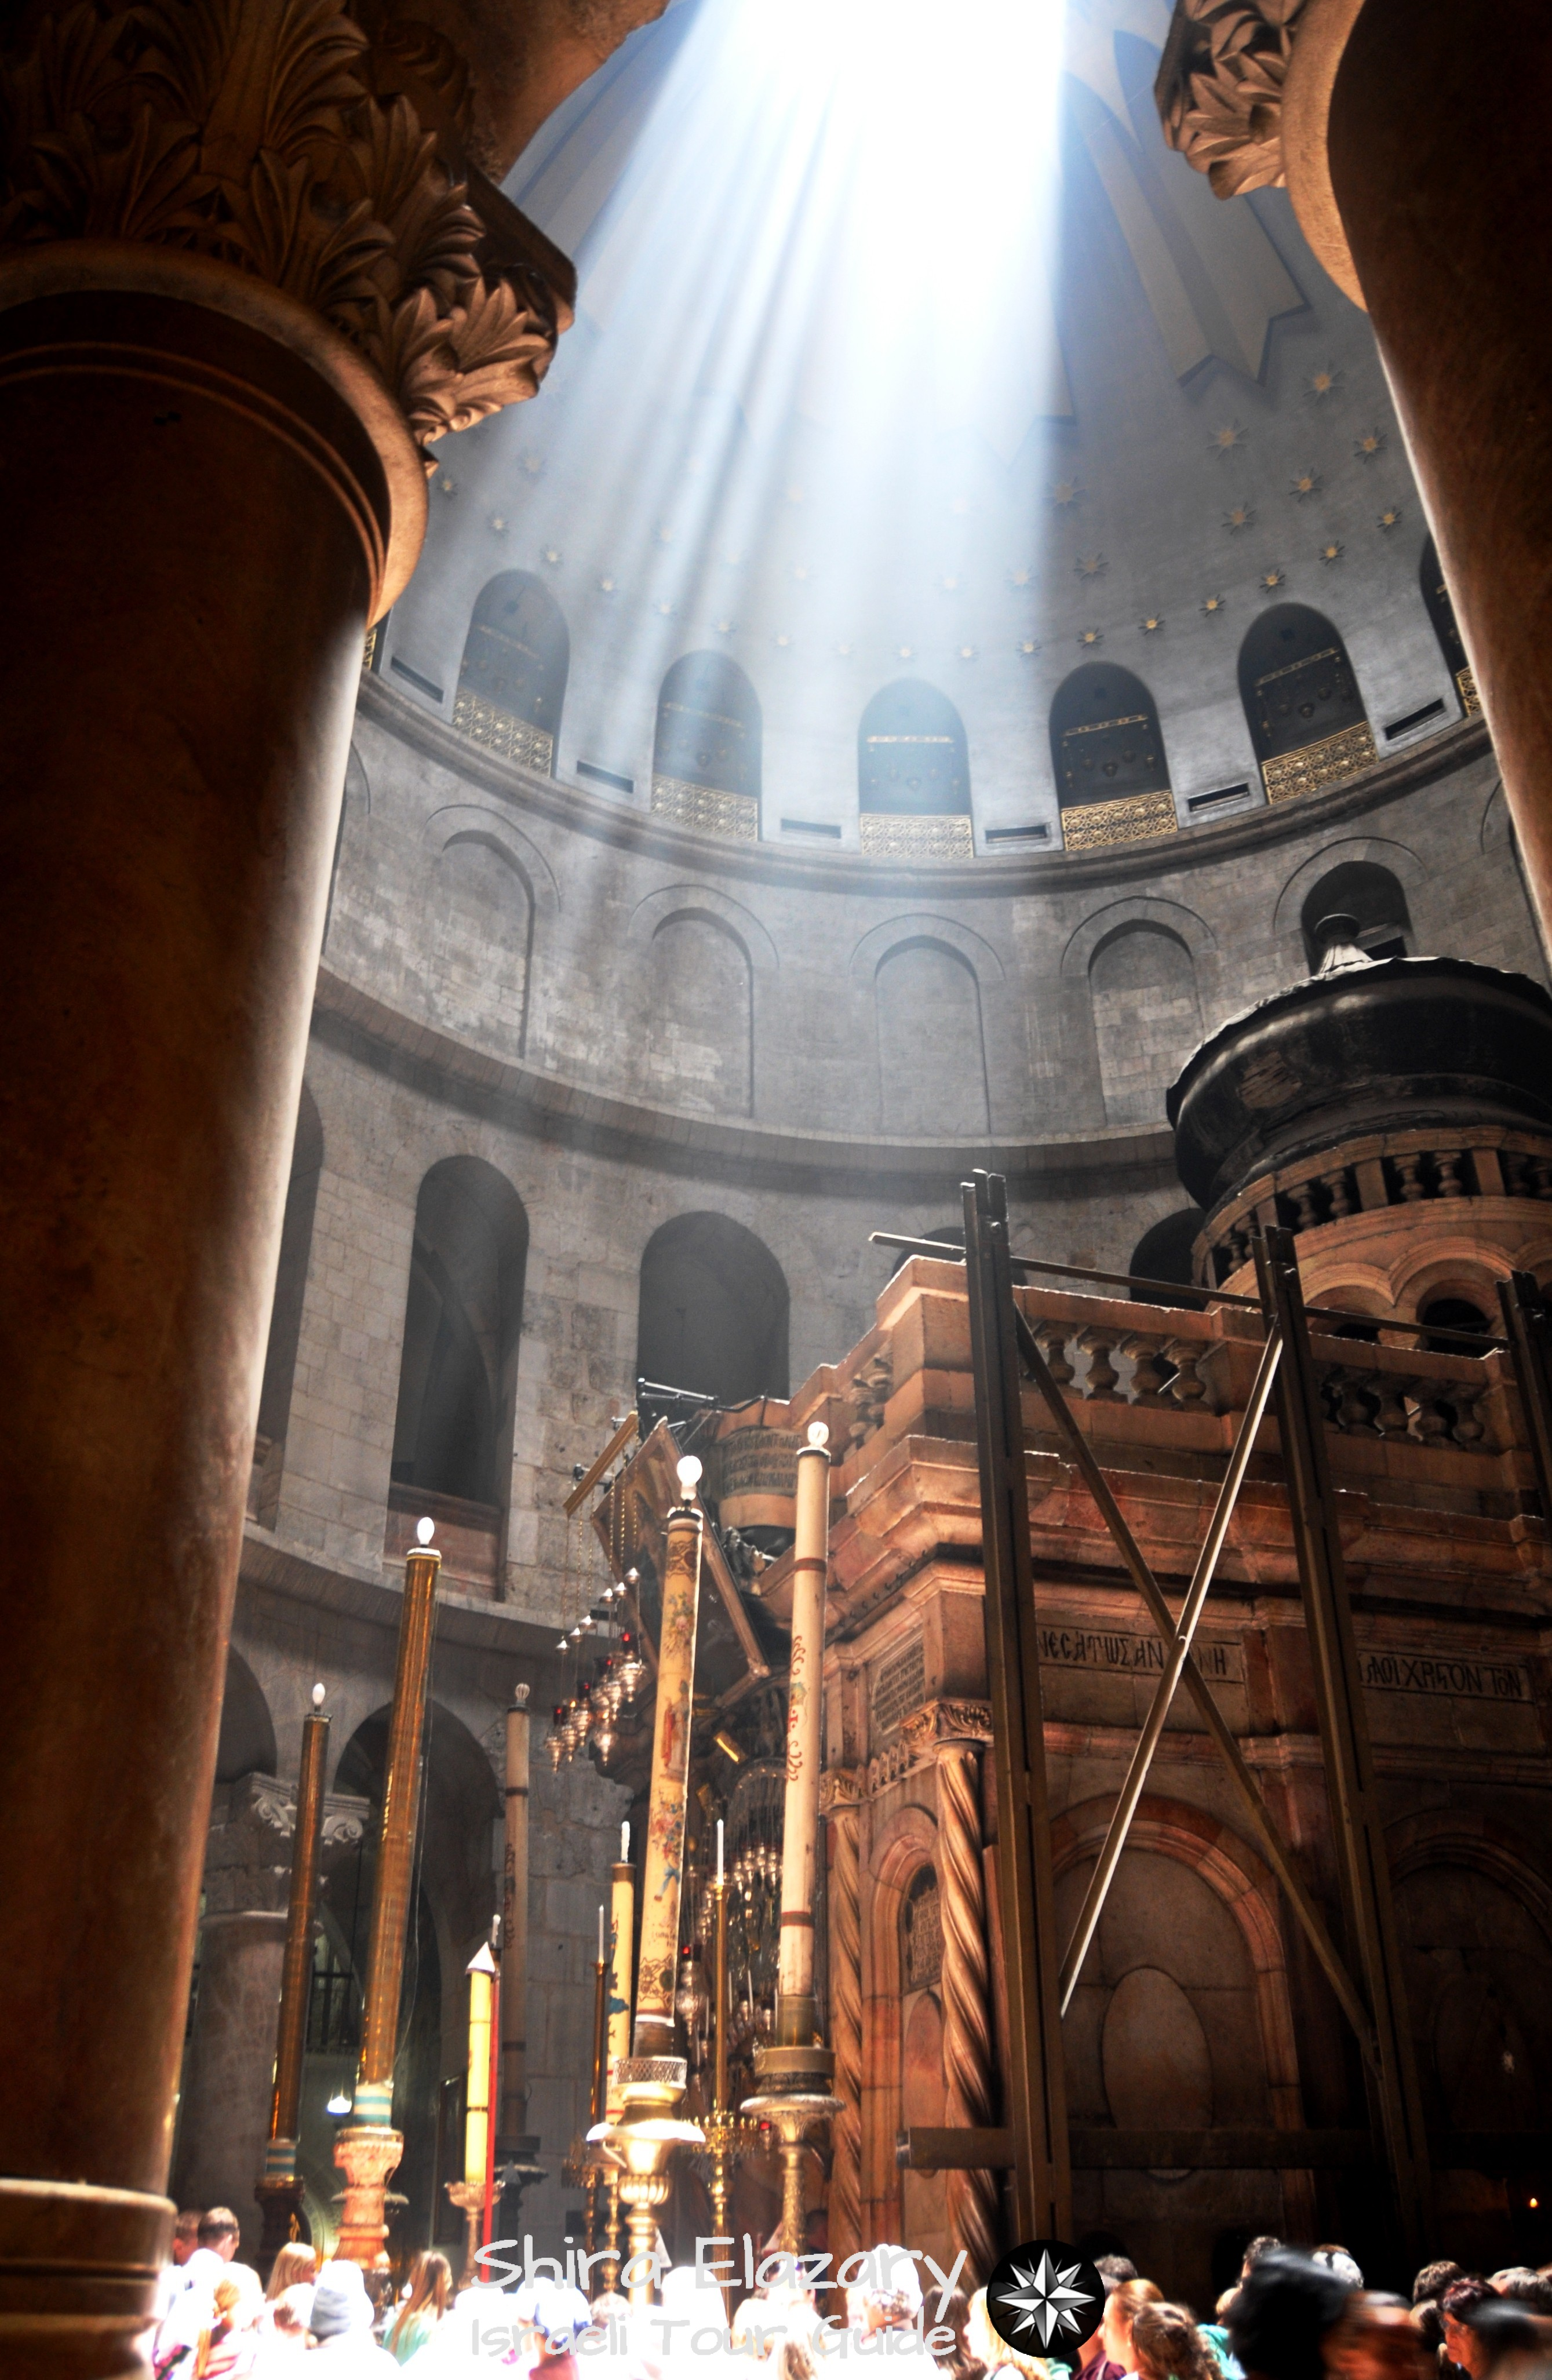 Inside the Church of the Holy Sepulcher with light coming in from above